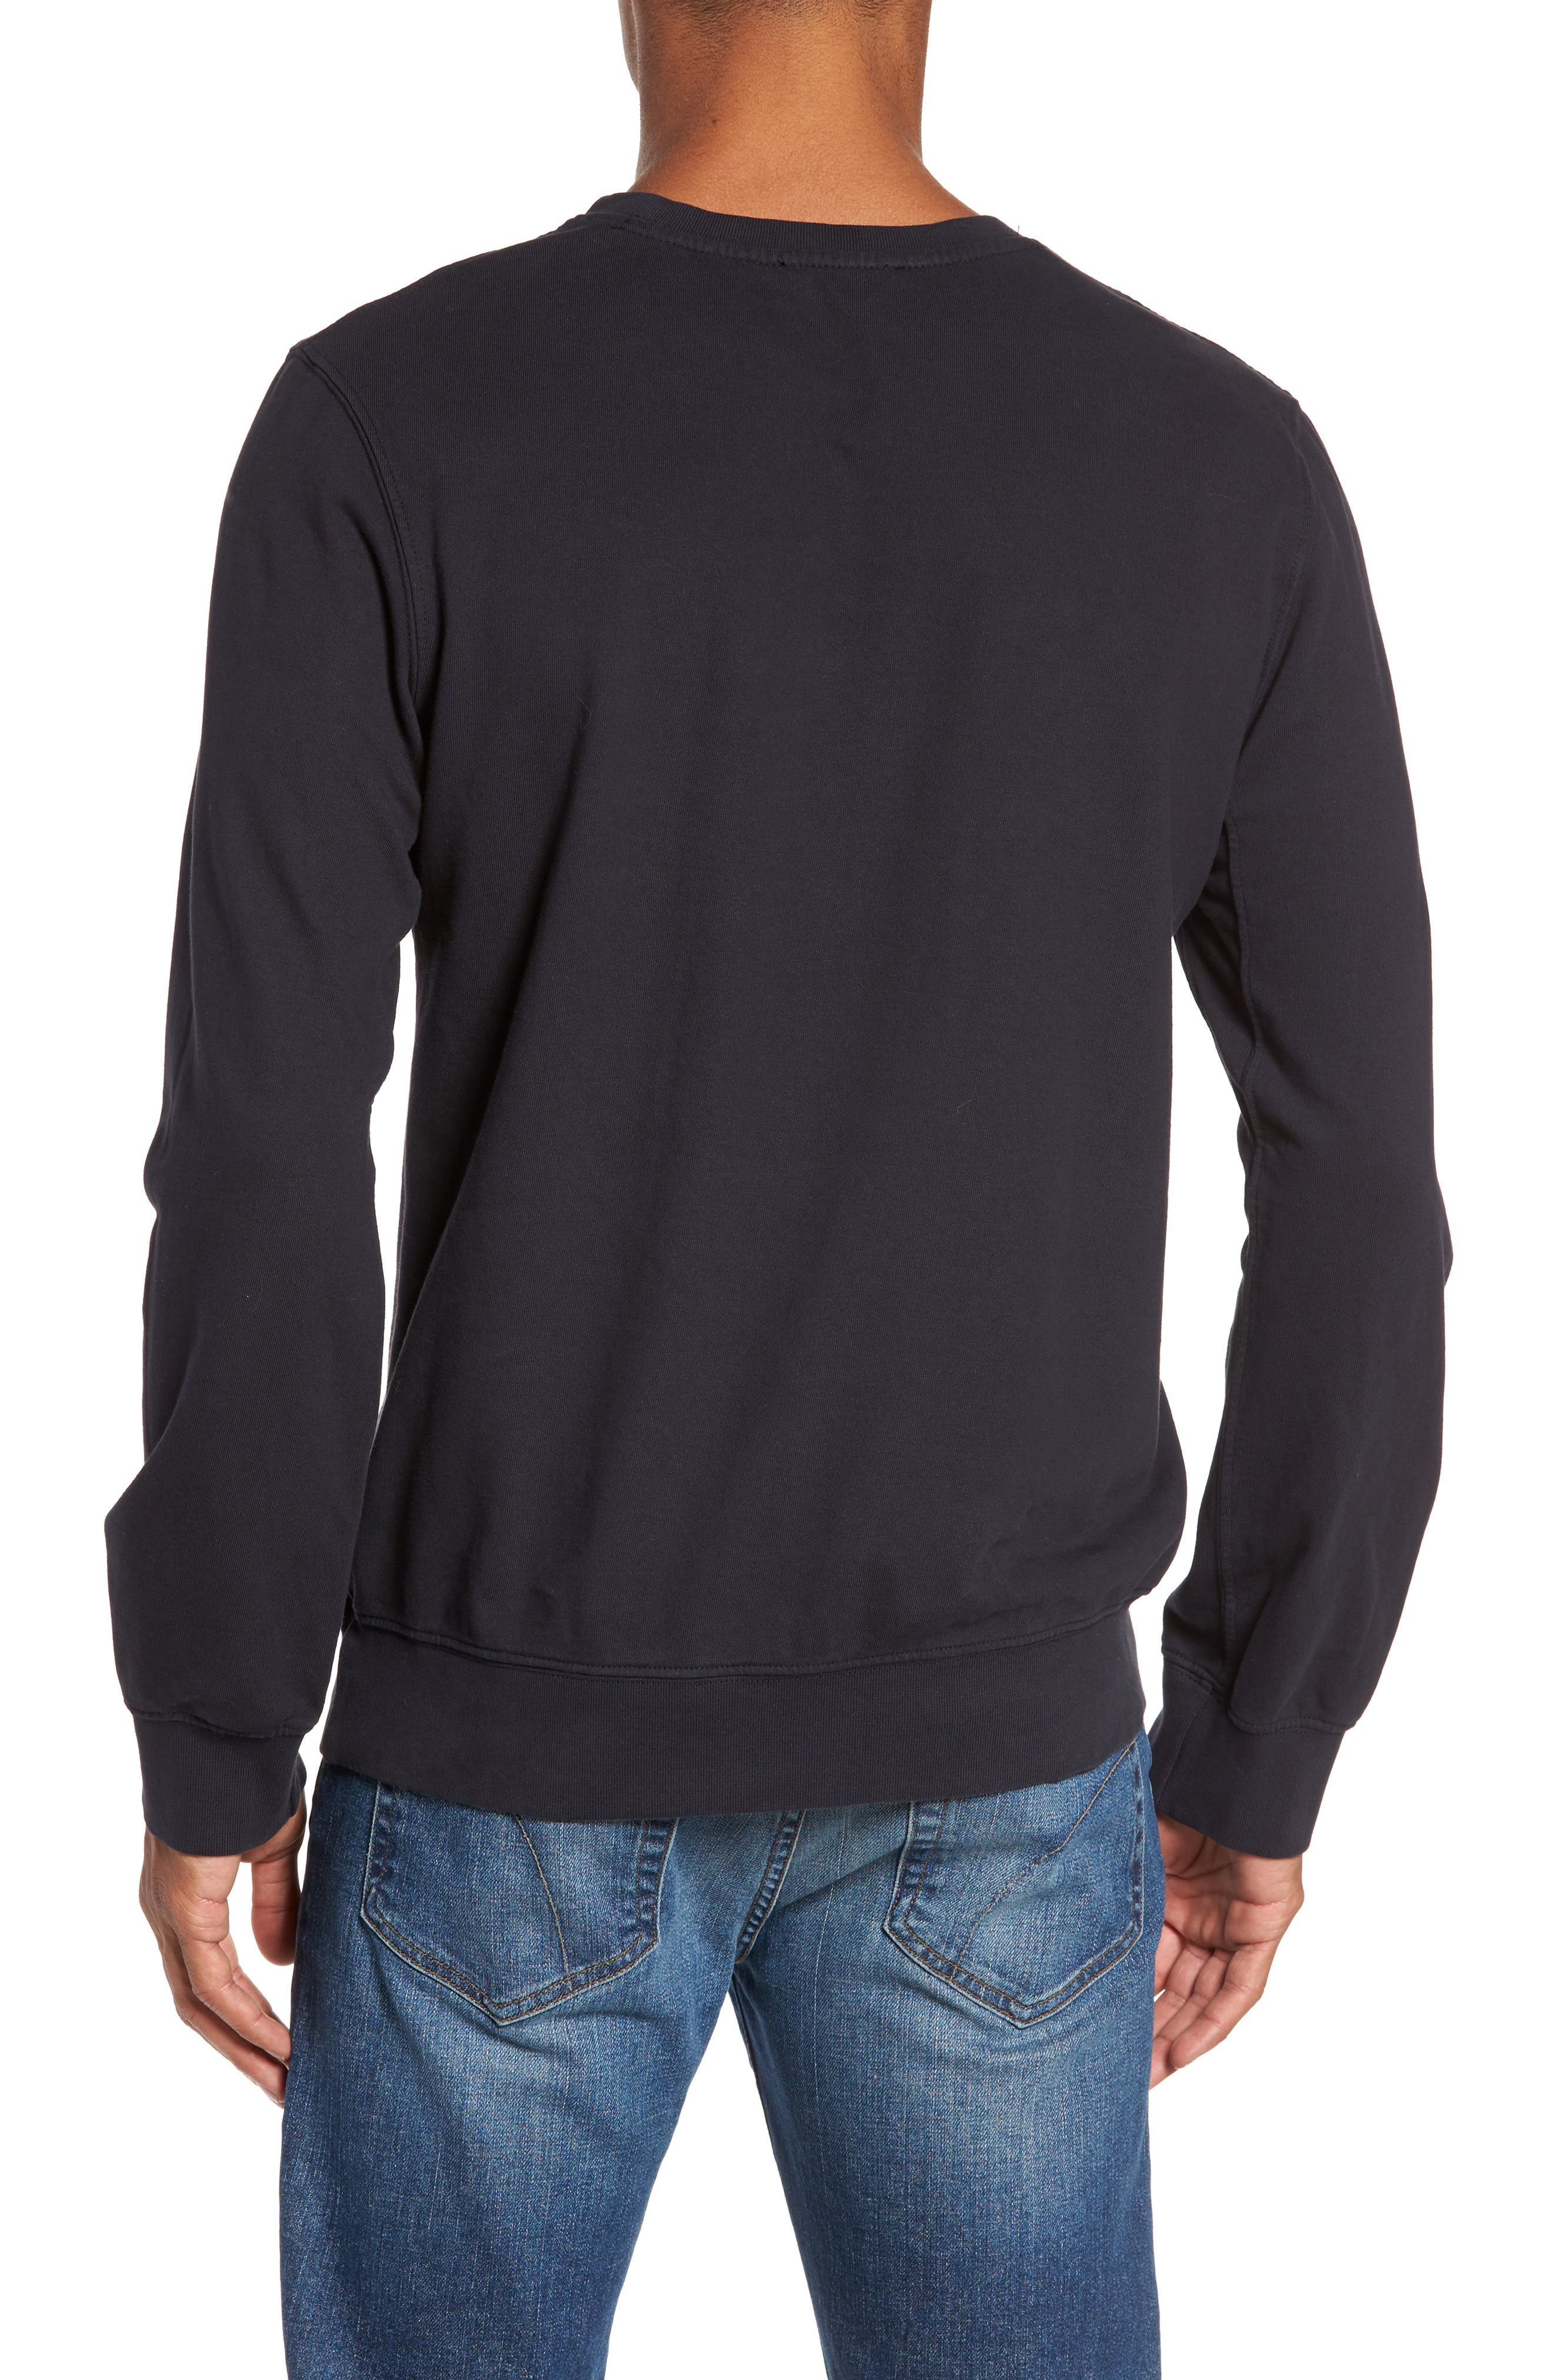 French Terry Sweatshirt,                             Alternate thumbnail 6, color,